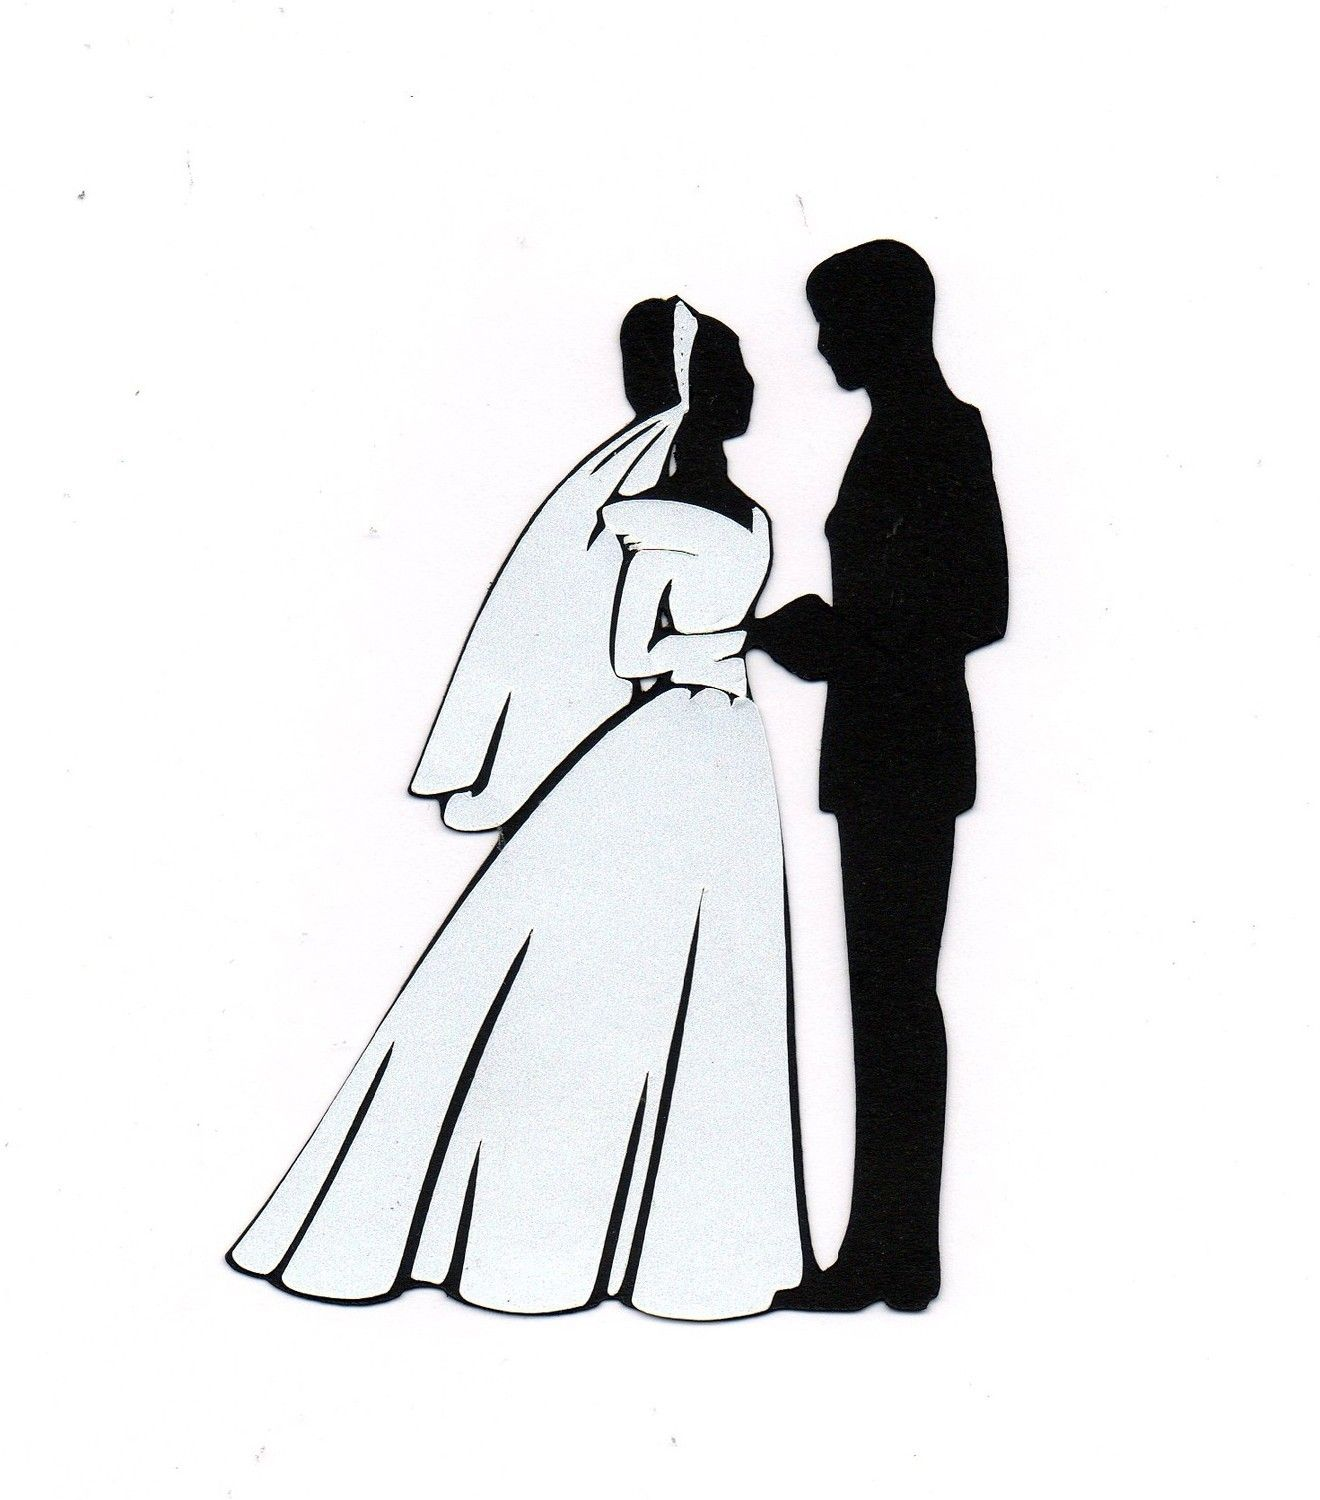 groom silhouette at getdrawings com free for personal use groom rh getdrawings com bride & groom clipart bride groom clipart black and white